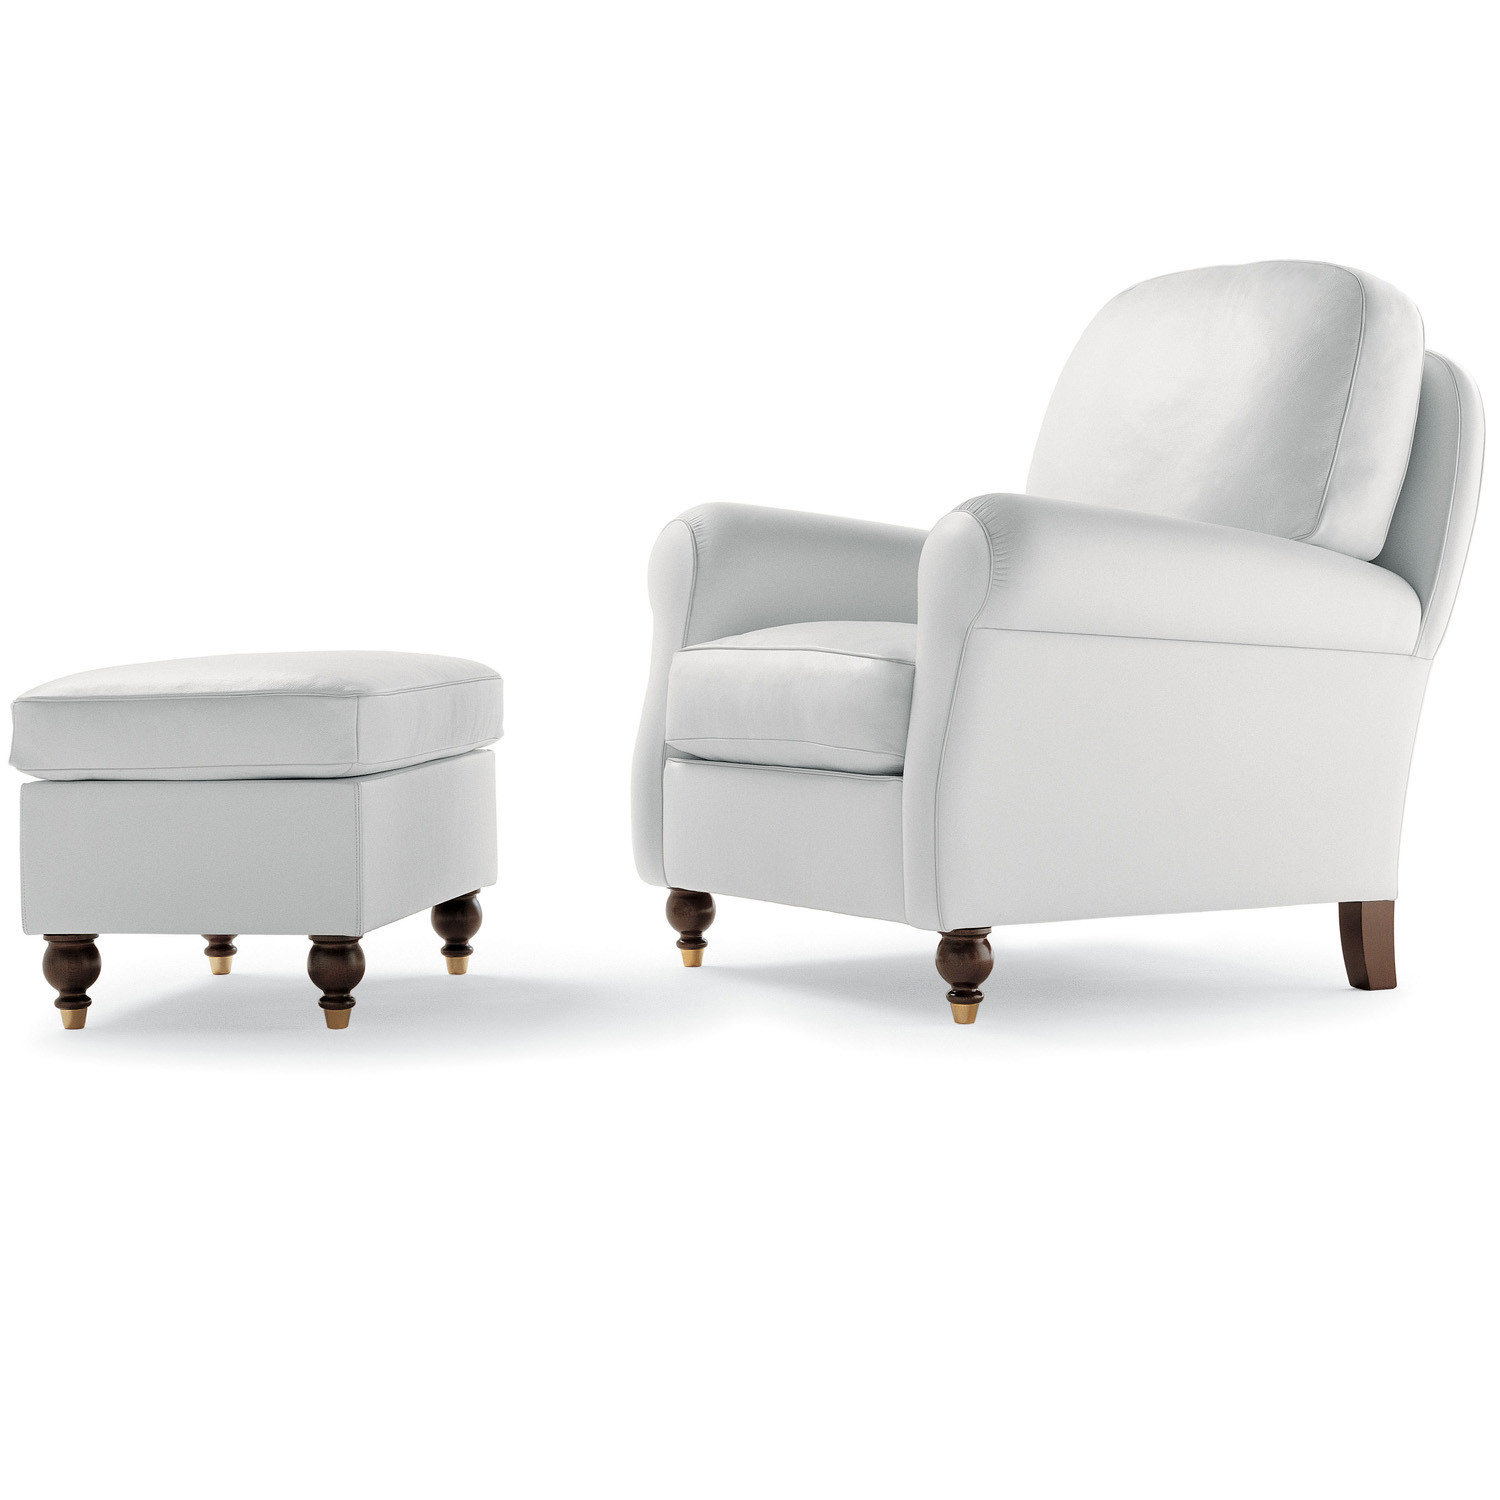 George Armchair and Footrest by Poltrona Frau